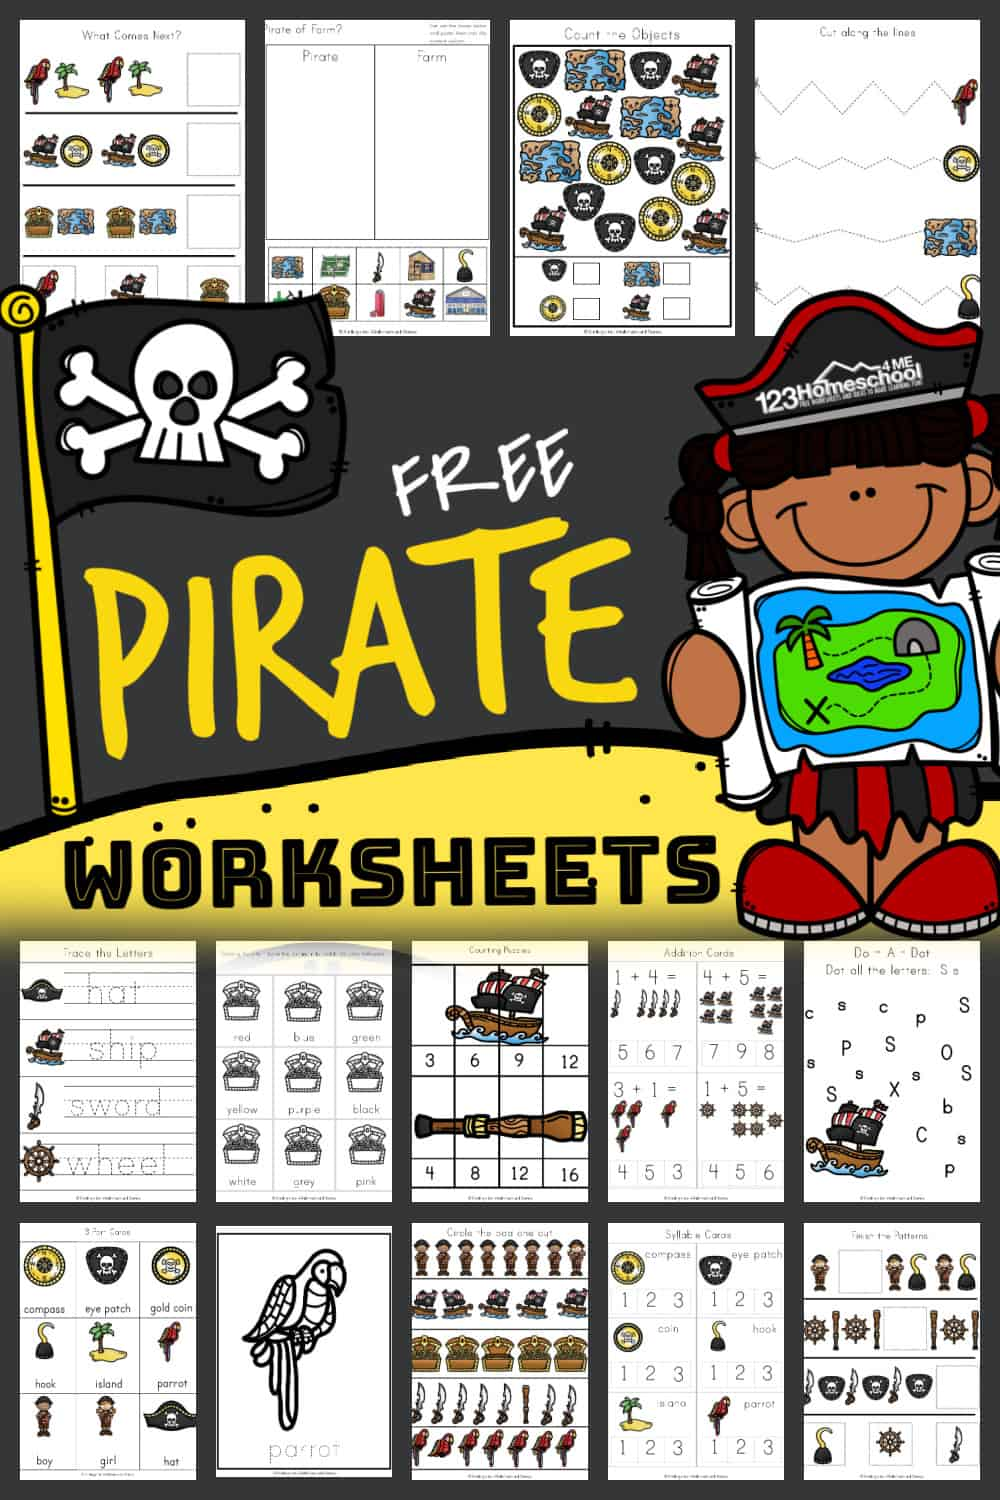 hight resolution of FREE Printable PIRATE Worksheets